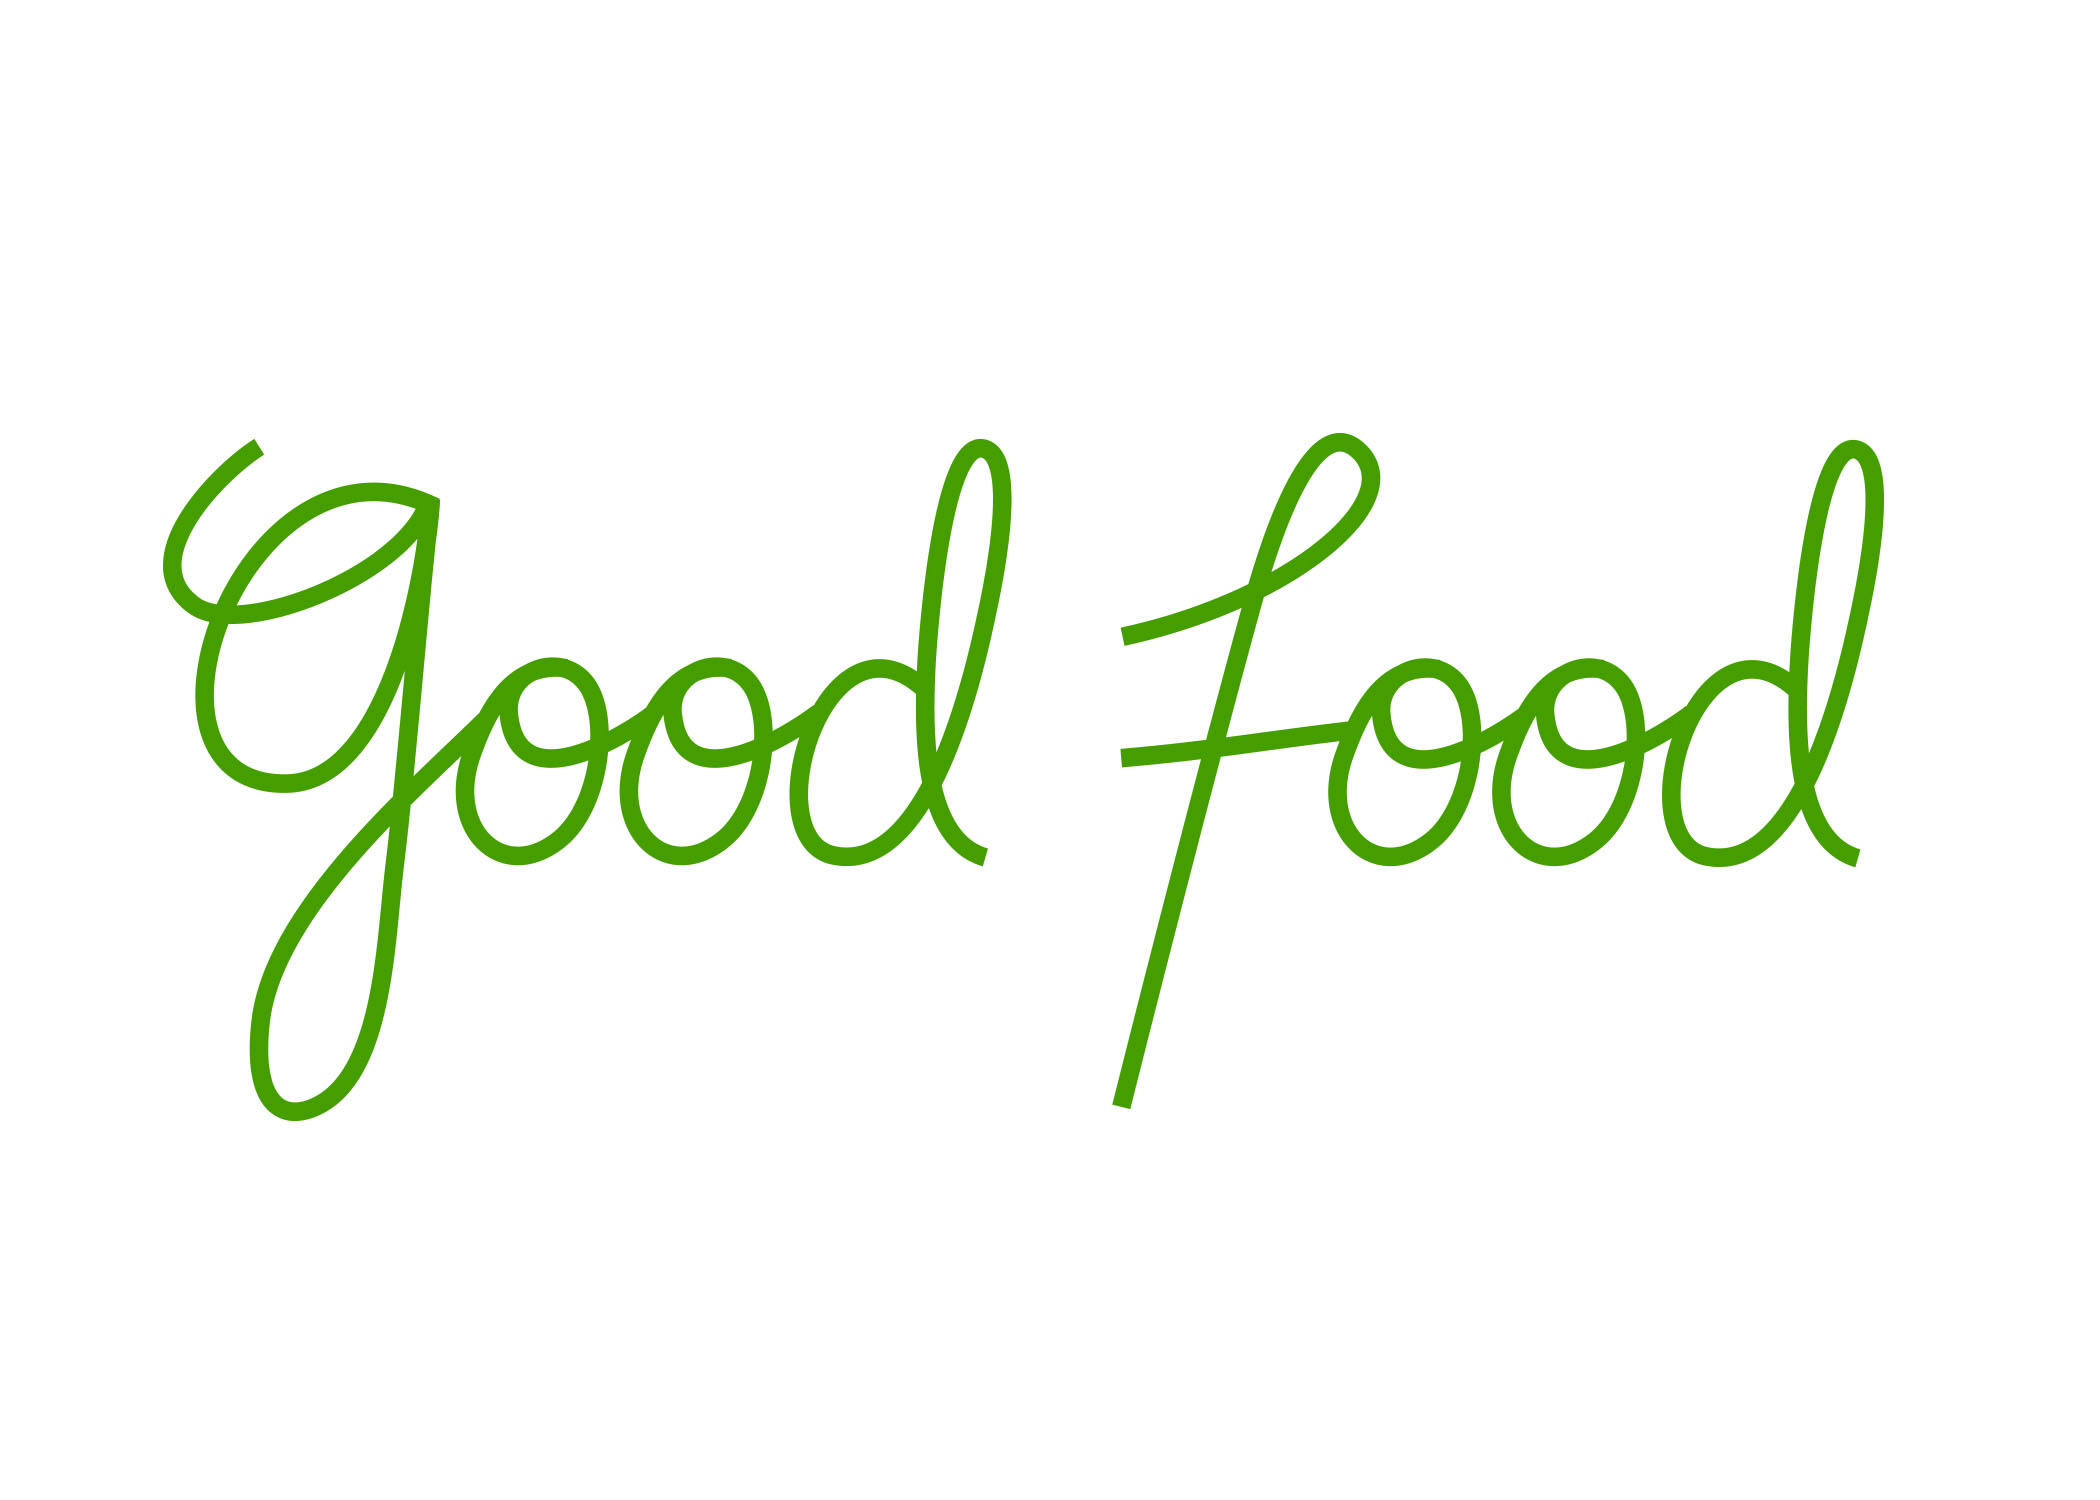 A handwritten logo was created for Good Food